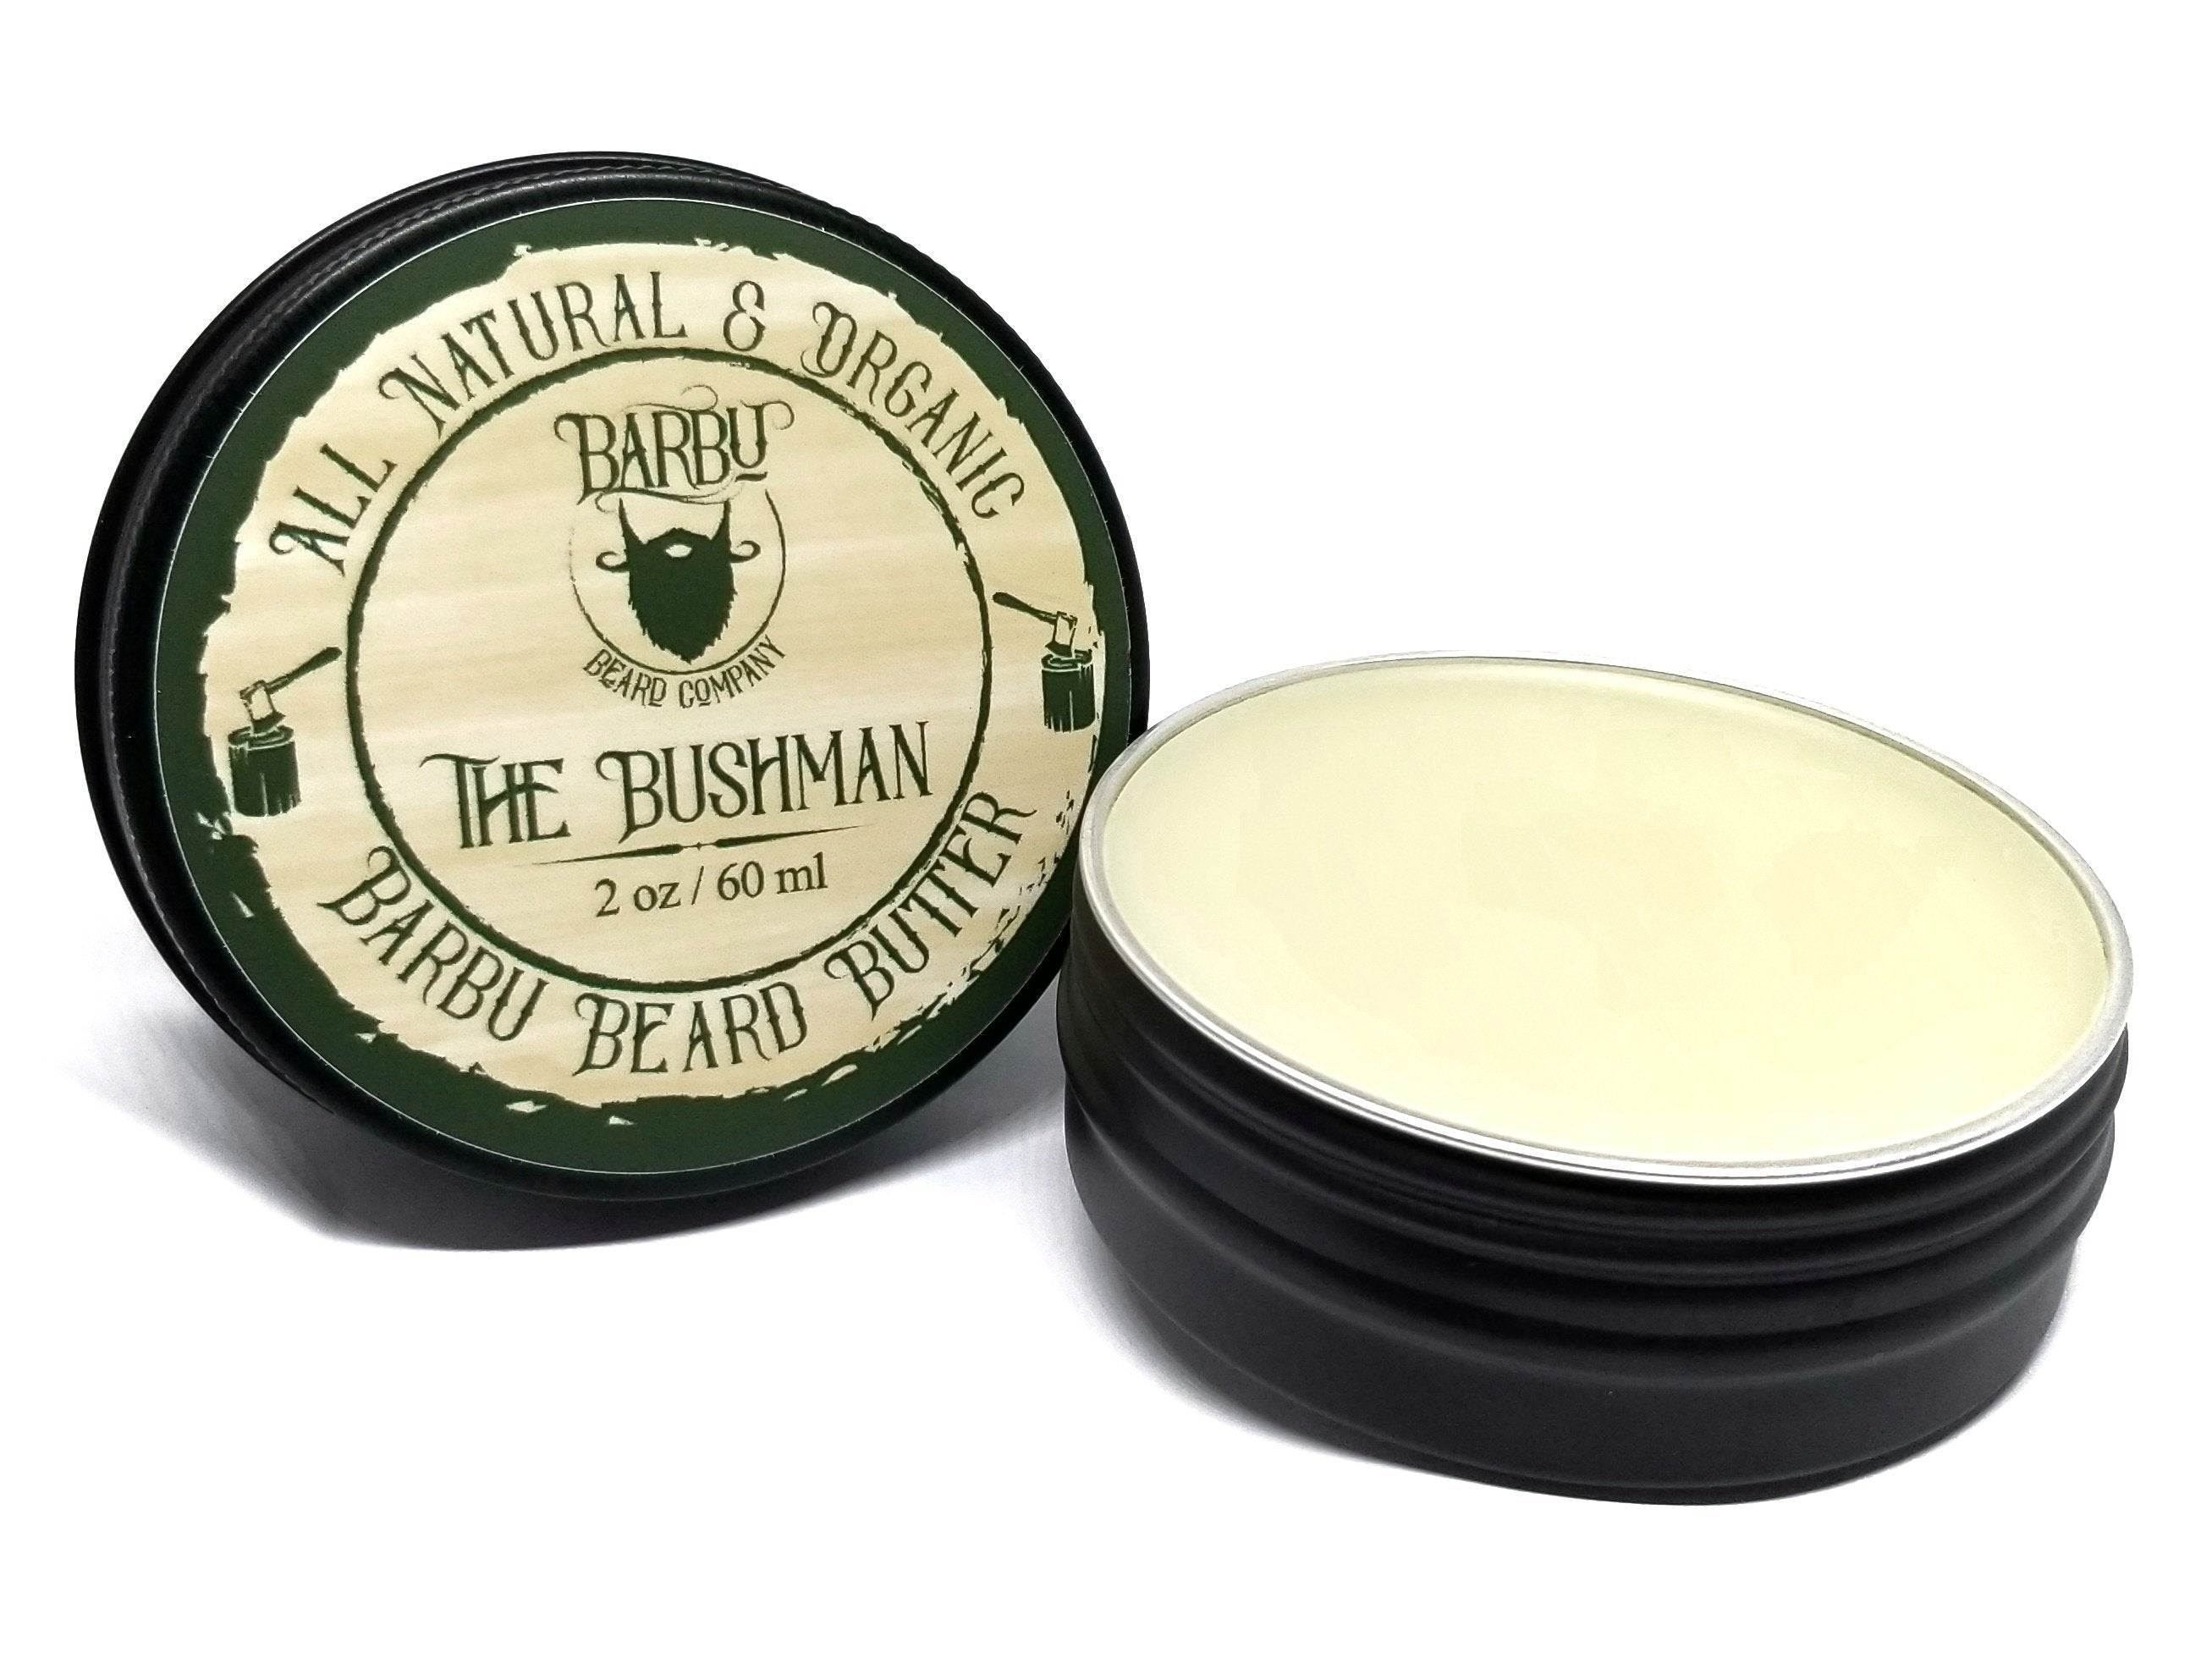 The Bushman Beard Butter